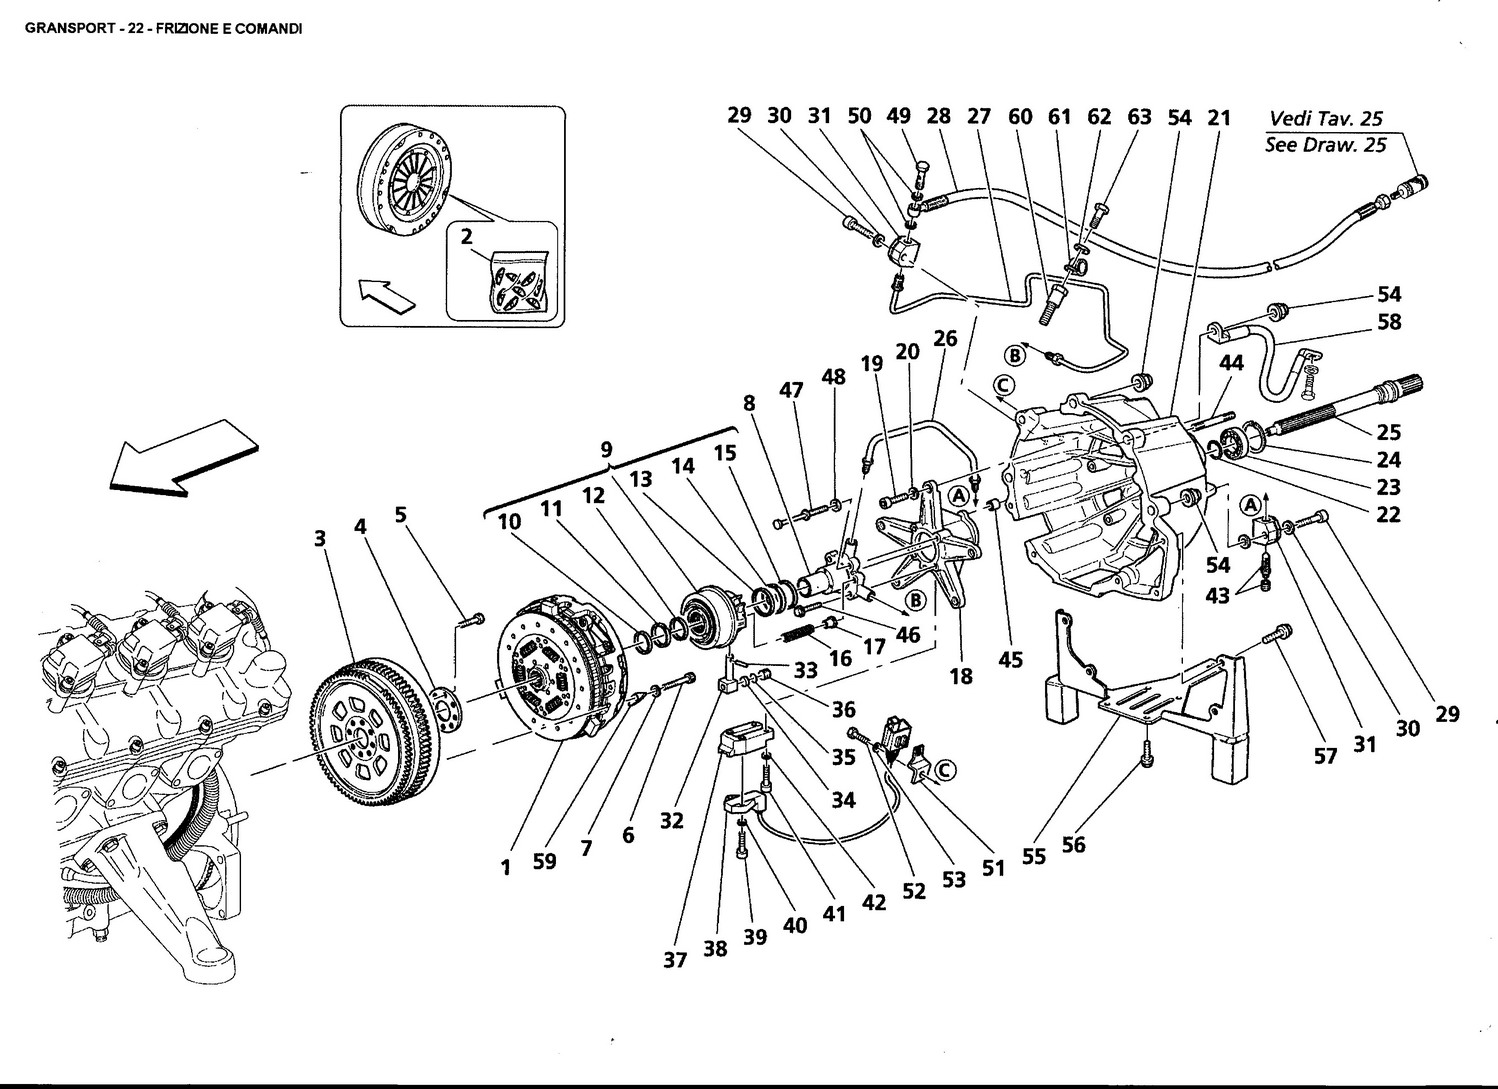 74 super beetle fuse box diagram